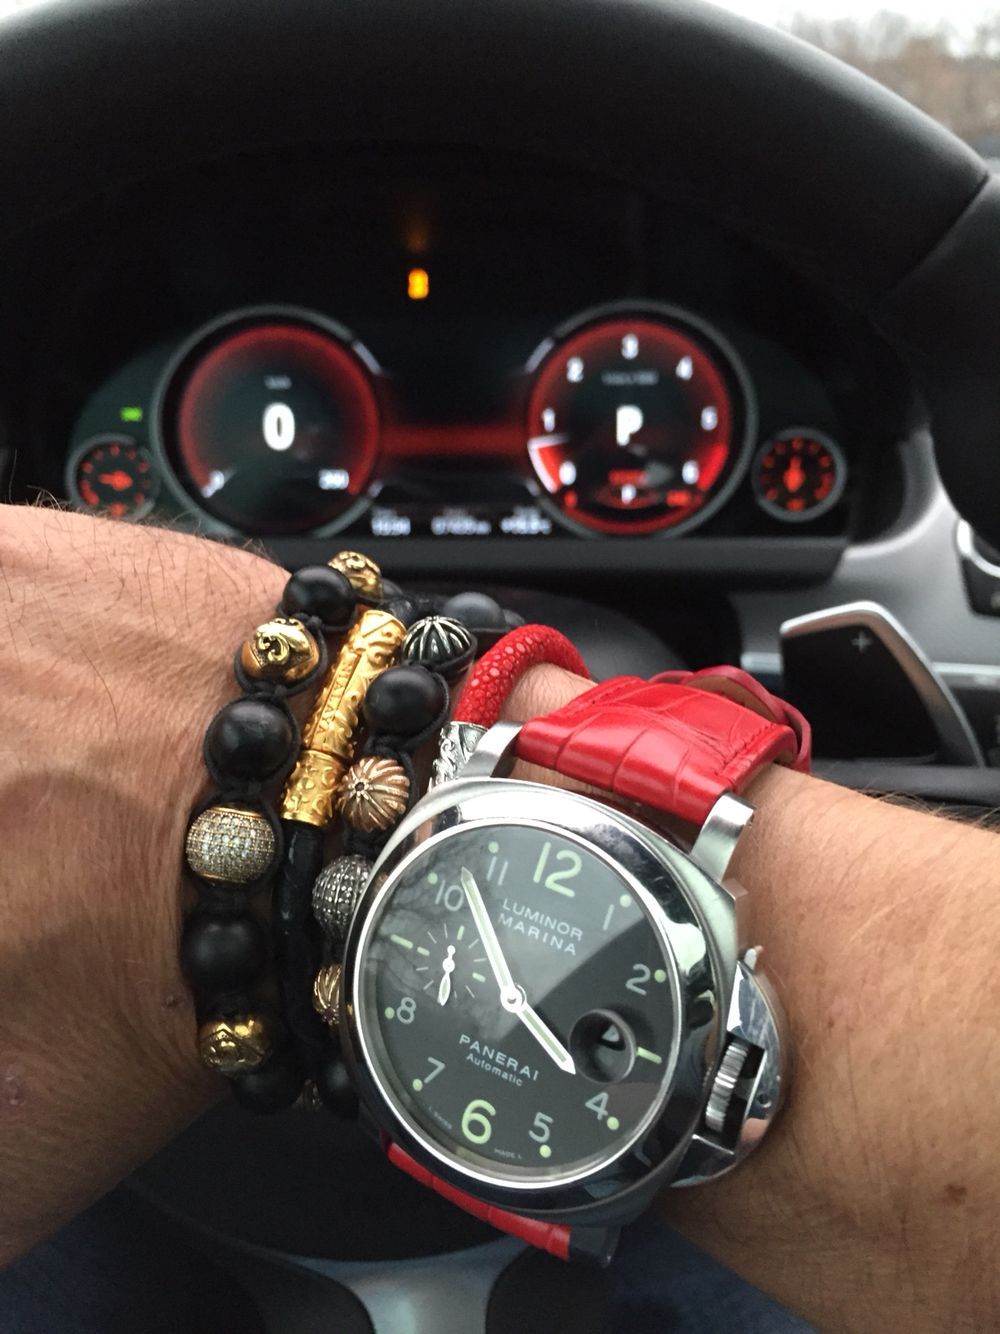 All red, with my Panerai, Nialaya bracelets and the BMW ...